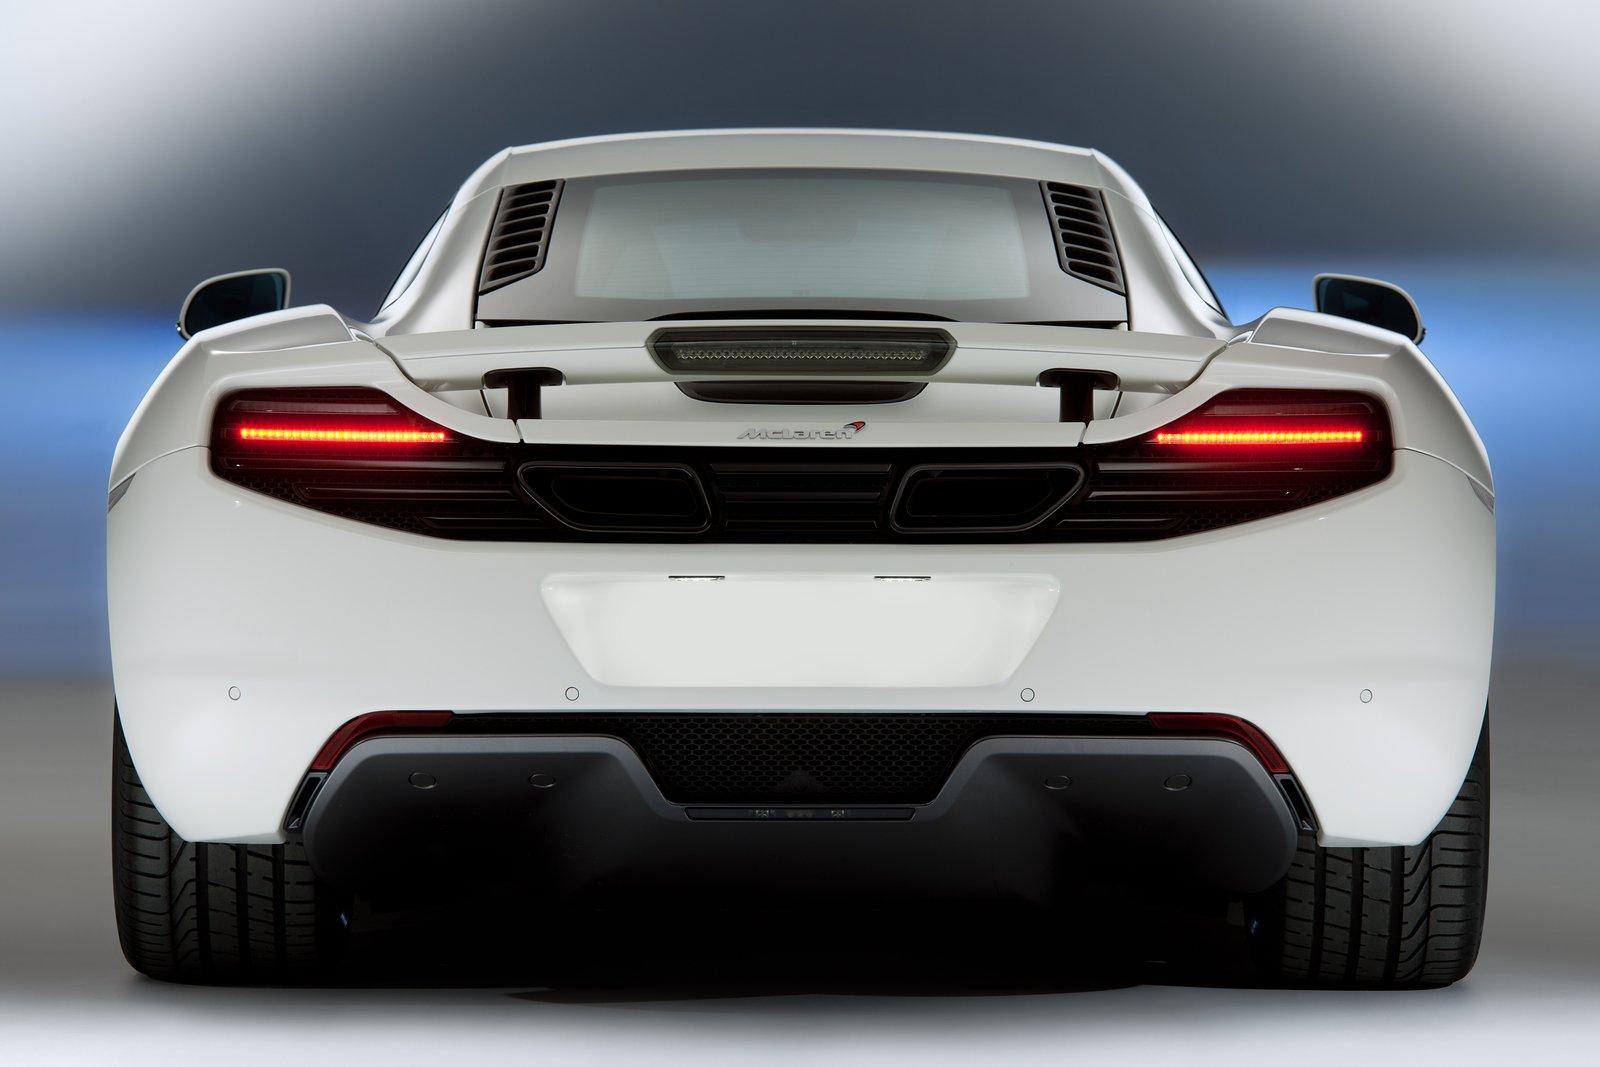 McLaren MP4 12C 13 Critiques opinion provoked MP4 12C modification for better performance